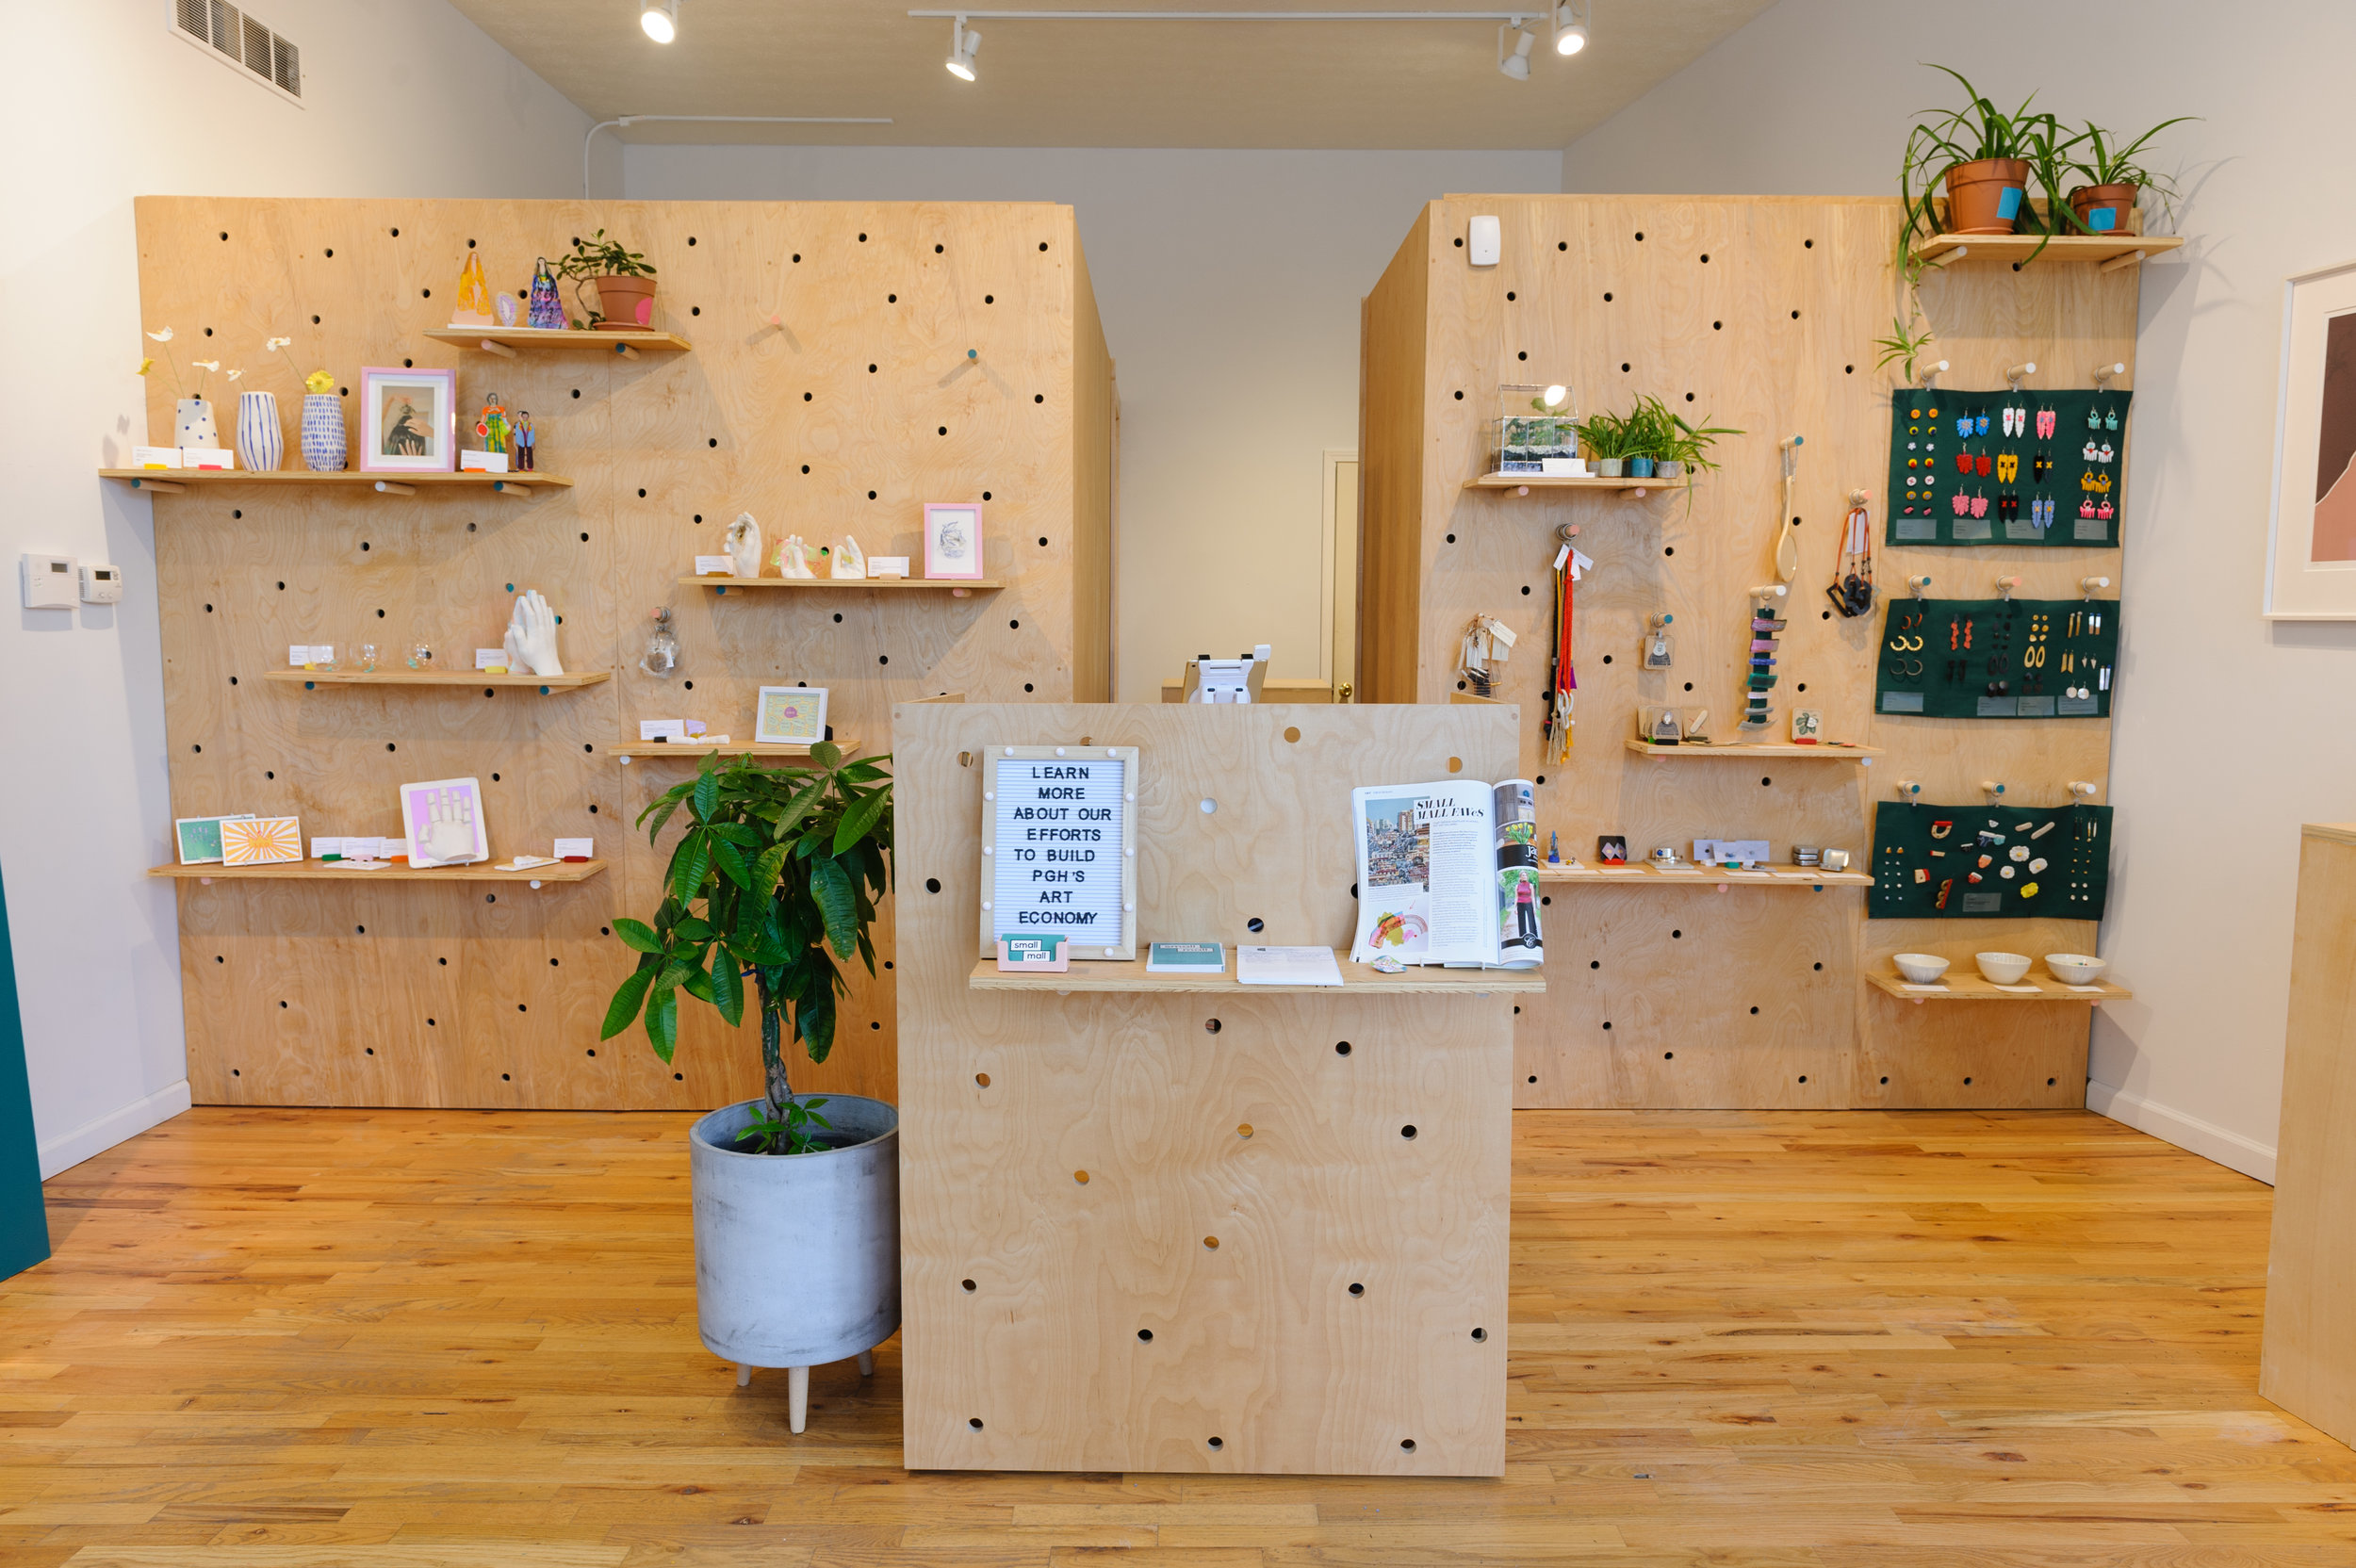 Interior of Small Mall, the brick and mortar retail outpost and office of Casey Droege Cultural Productions in Lawrenceville, Pittsburgh. Courtesy Porter Loves Creative.